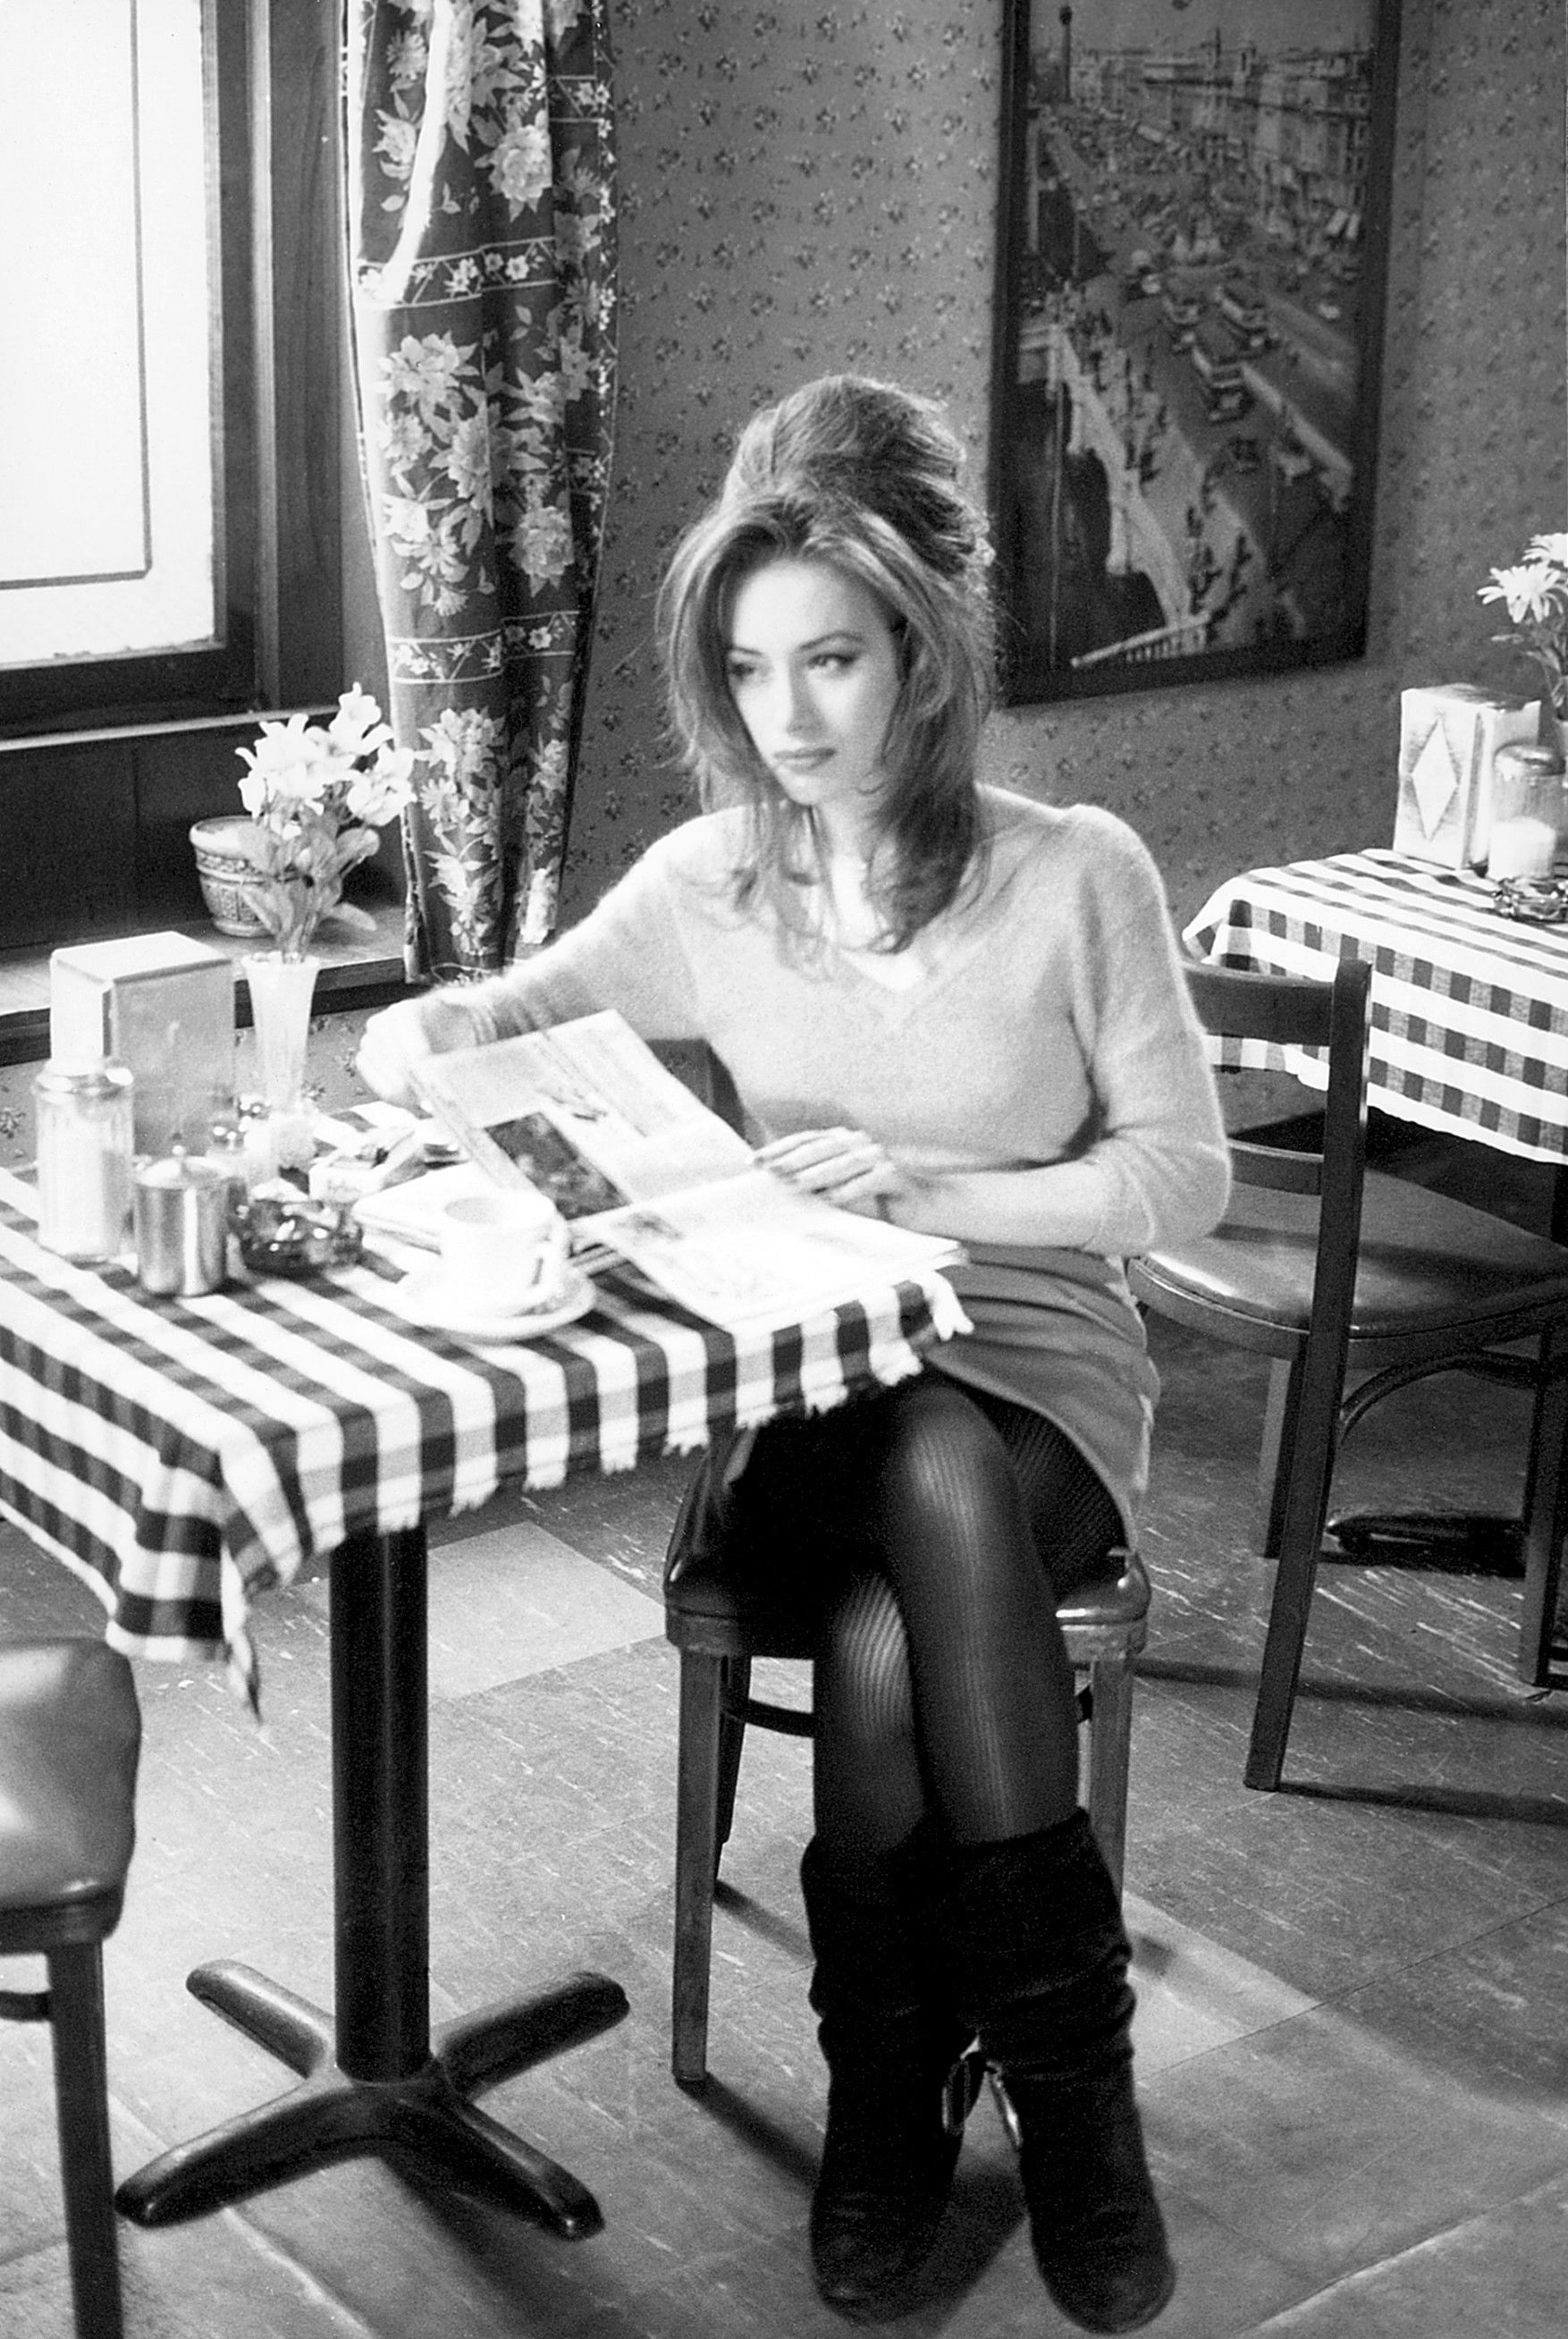 Renee French One Of The Most Beautiful Actress Coffee And Cigarettes People Drinking Coffee Coffee Drinks